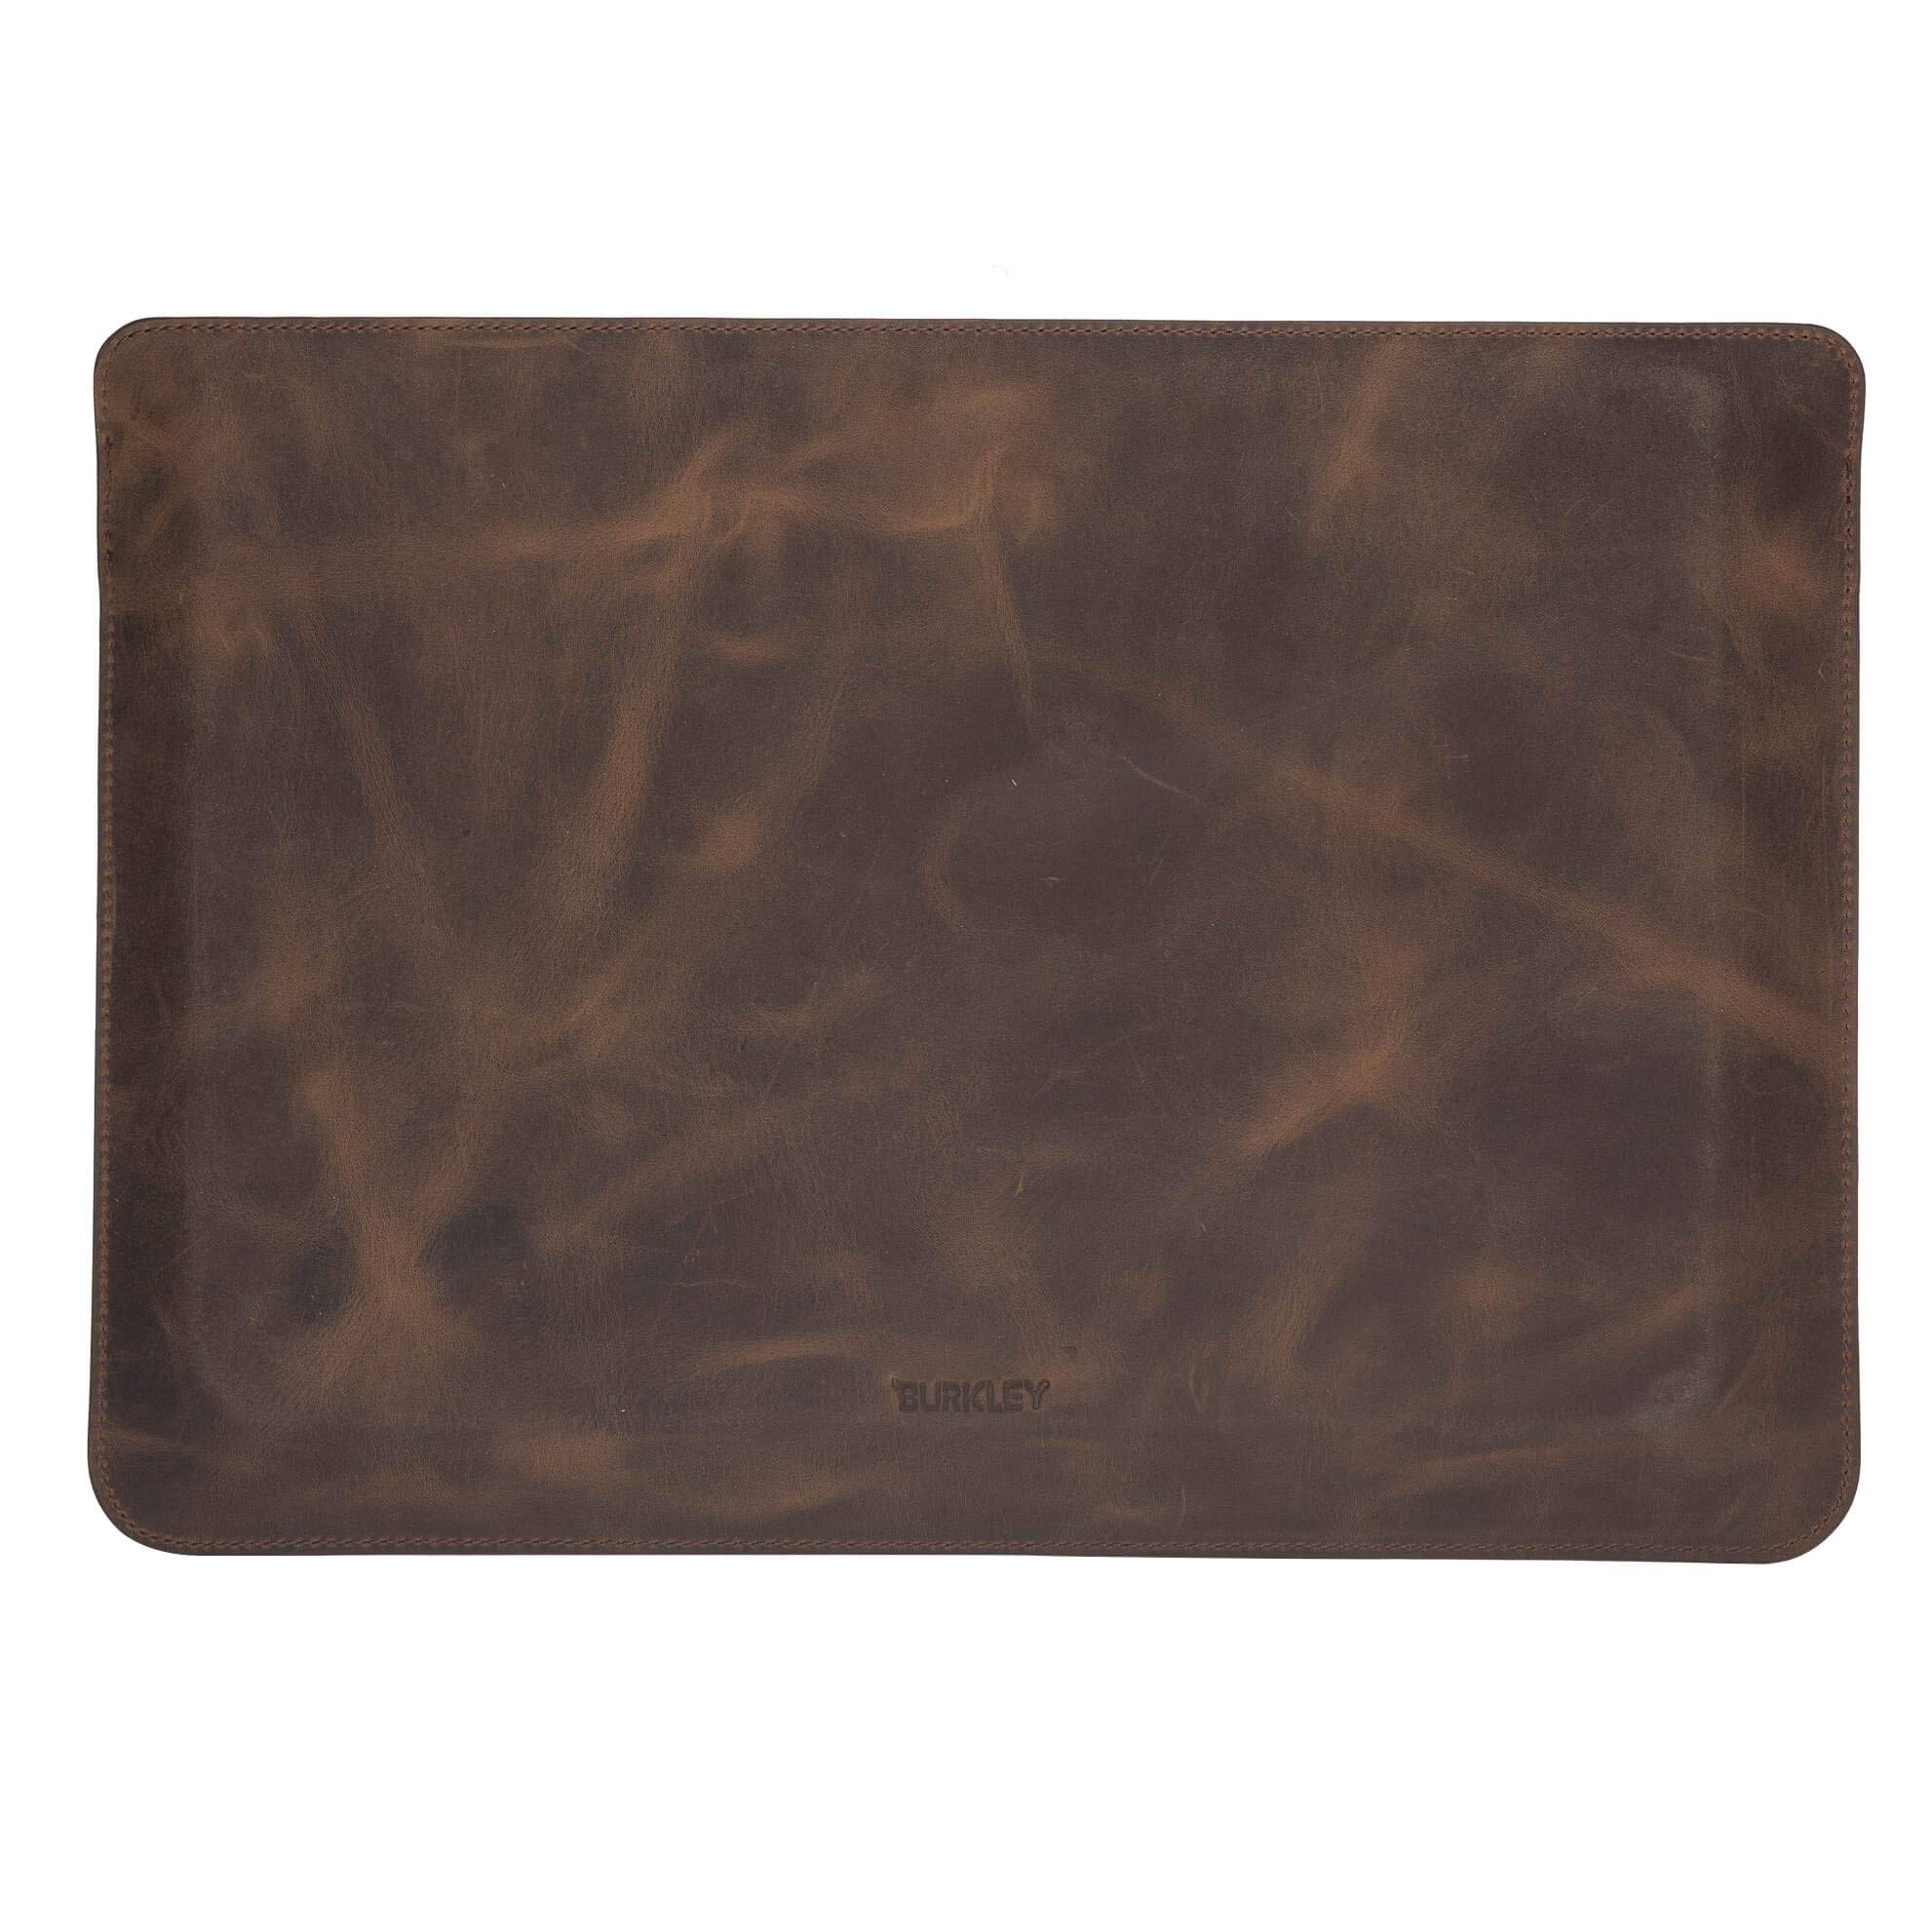 Burkley Case Compatible with MacBook Pro 15'' Burkley Leather Sleeve, Handcrafted and Full Grain Leather for MacBook Pro 15'' (Distressed Antique Coffee) by Burkley Case (Image #2)